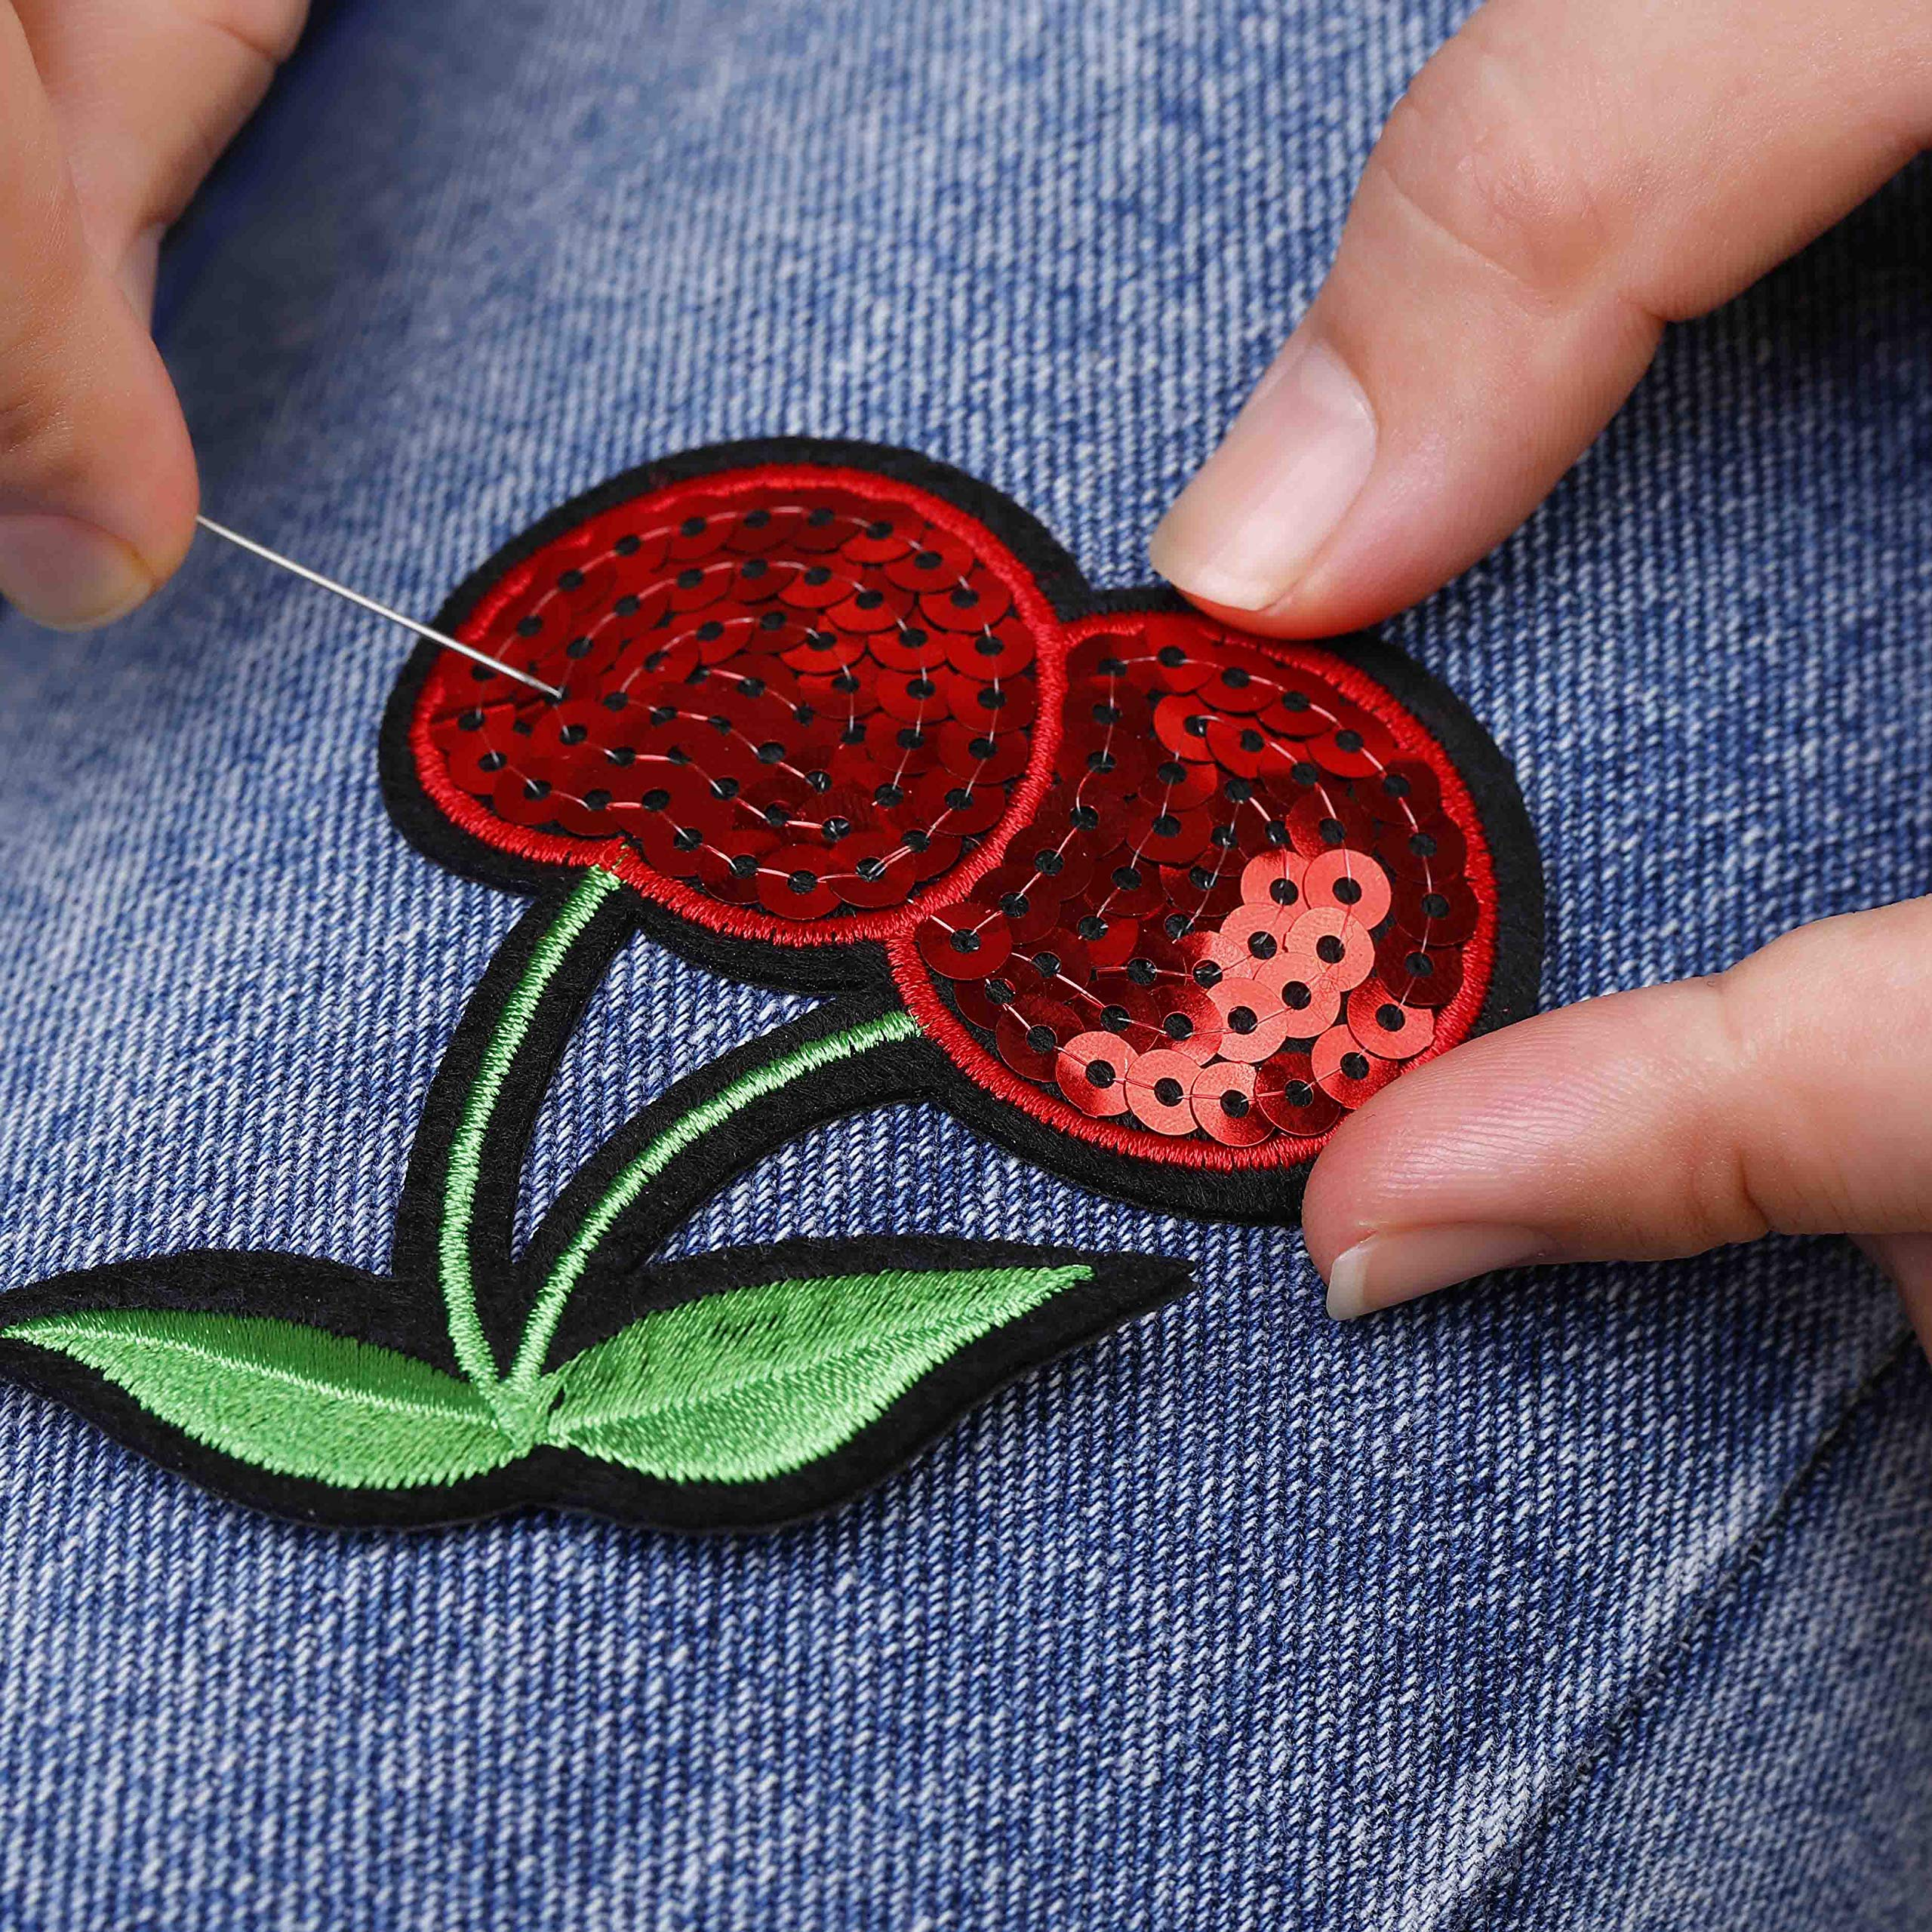 Iron on Patches 32 Pcs Stickers Cute DIY Clothes Patches Embroidery Applique for Sewing or Iron-on for T-Shirt Jean Clothes Bag Jacket, Backpack and Shoe